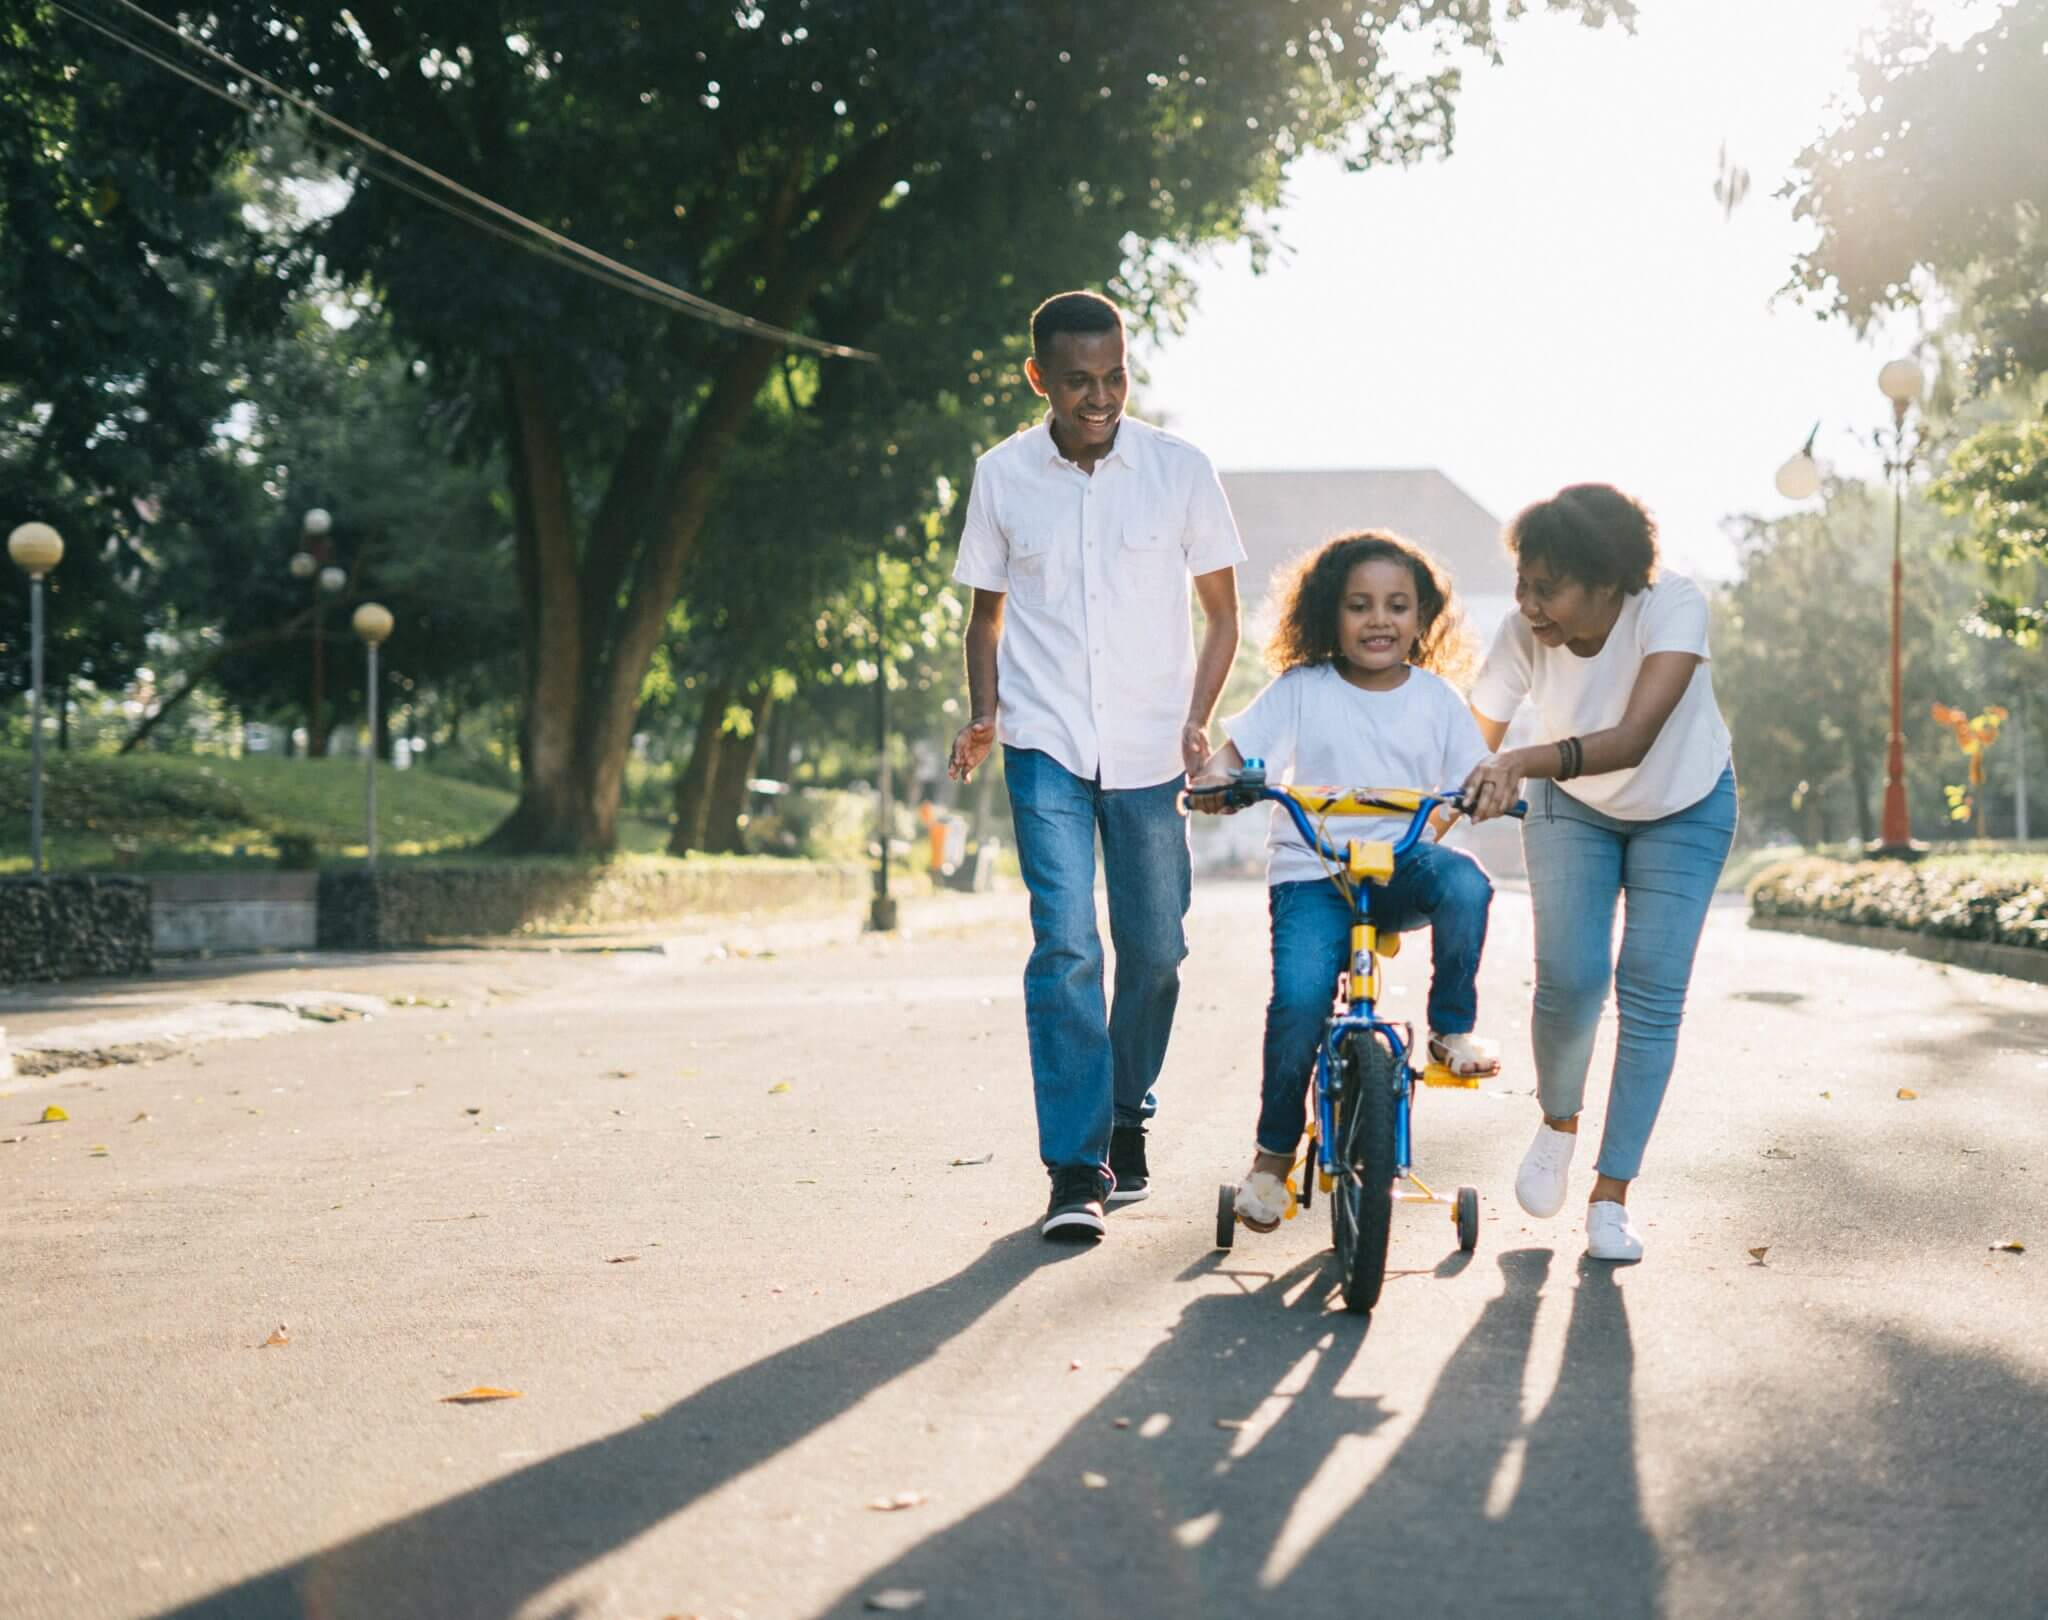 Family learning to ride bike